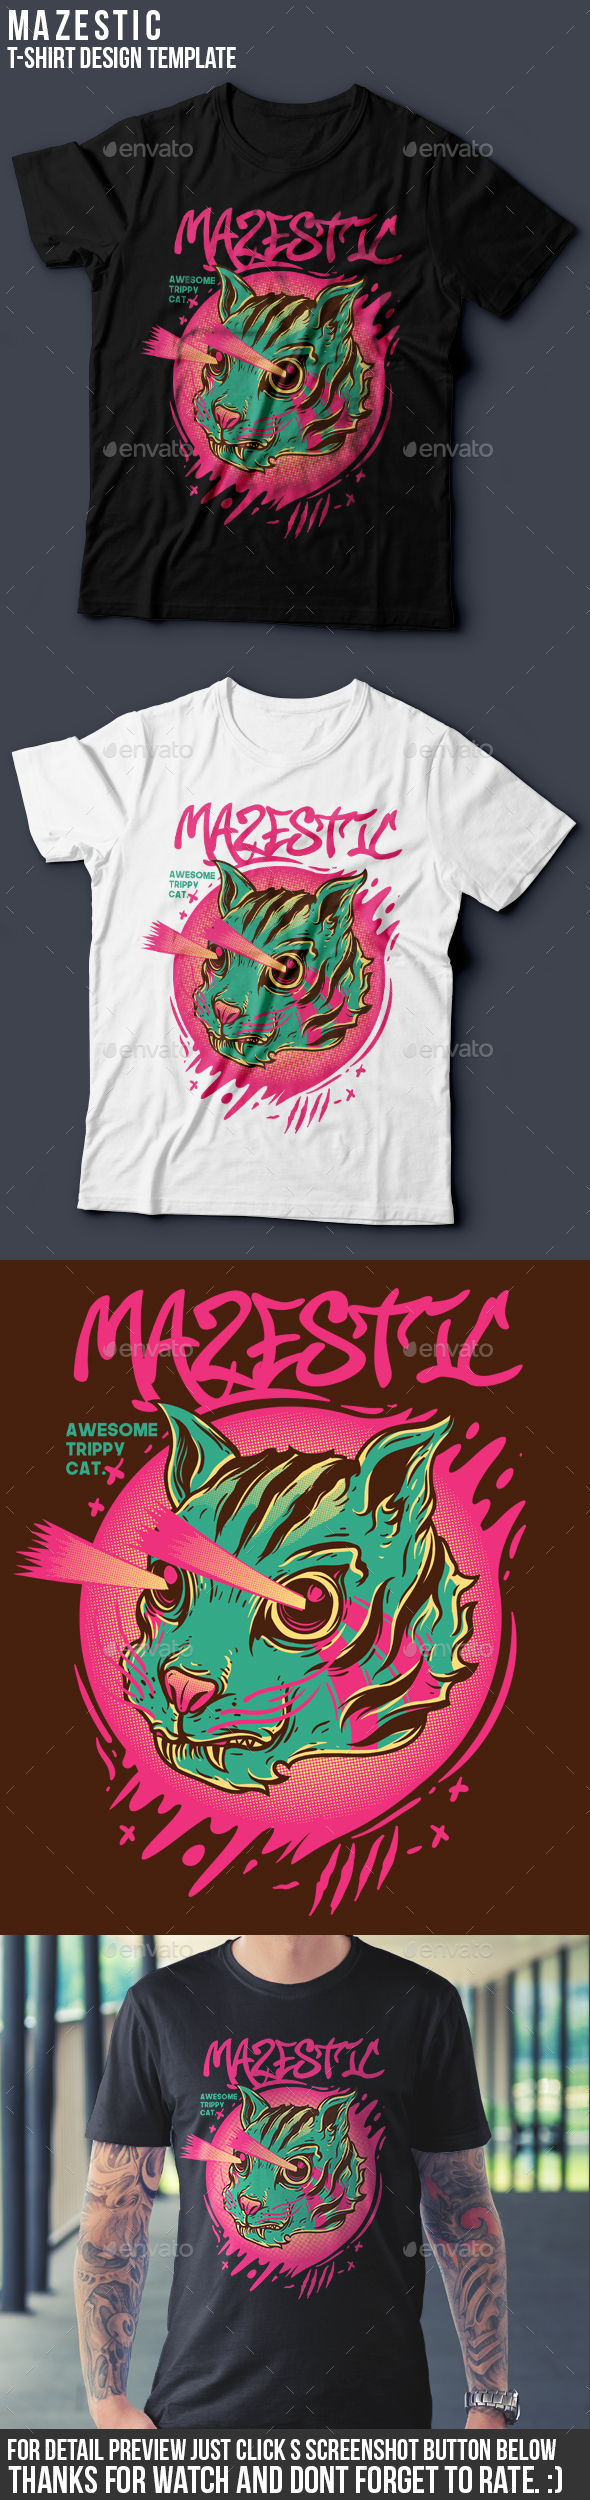 Mazestic T-Shirt Design - Funny Designs